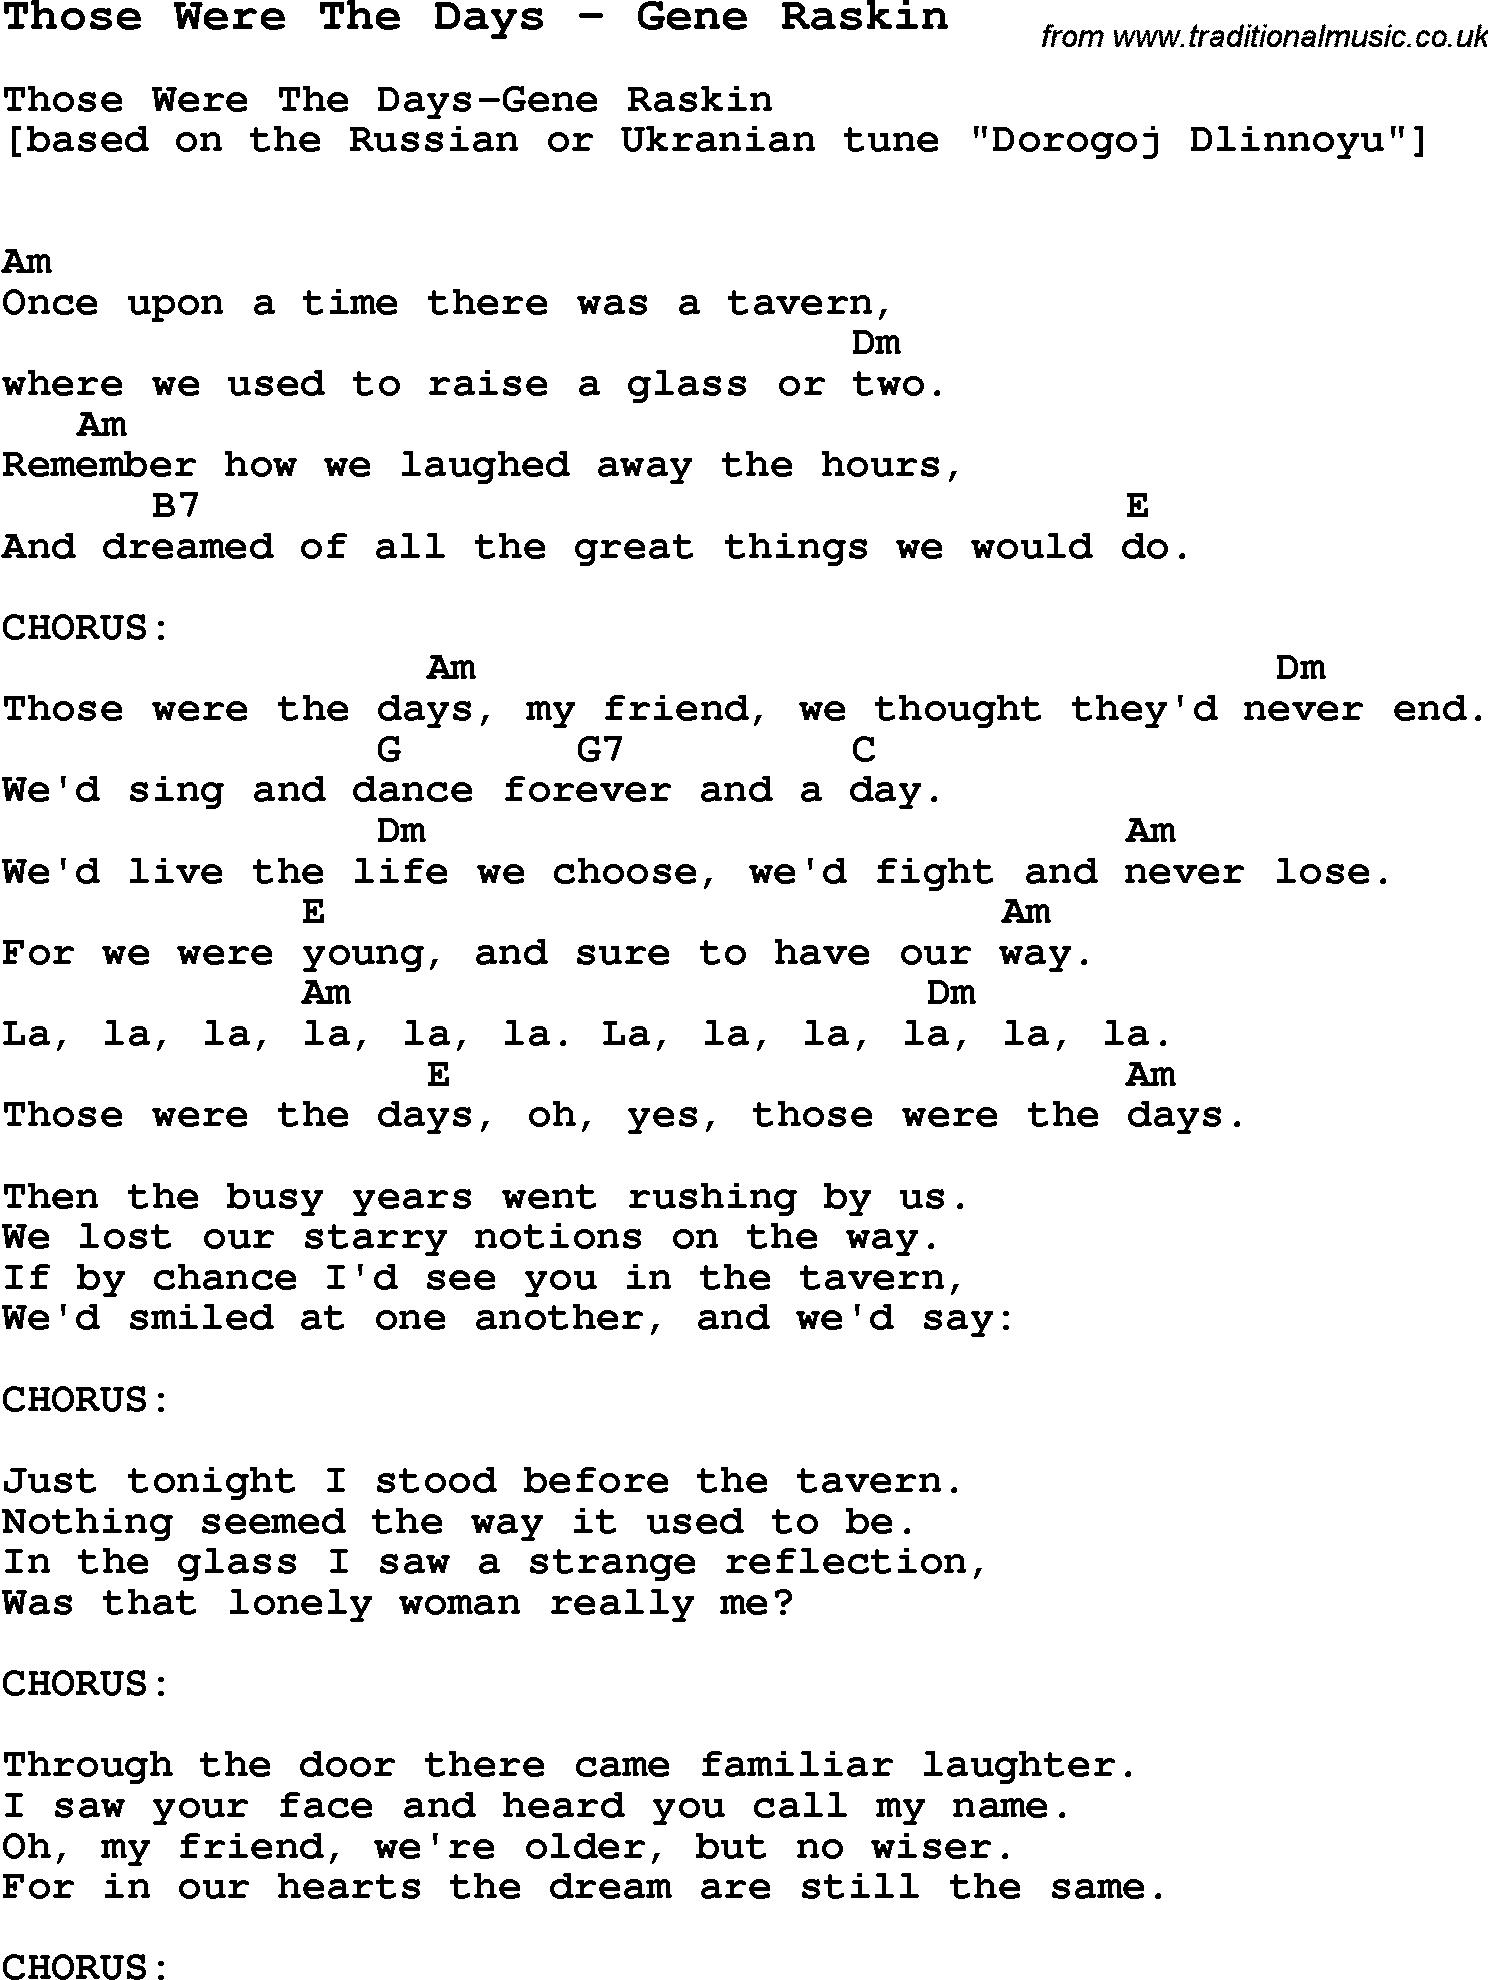 Song those were the days by gene raskin with lyrics for vocal song those were the days by gene raskin song lyric for vocal performance plus accompaniment chords for ukulele guitar banjo etc hexwebz Image collections